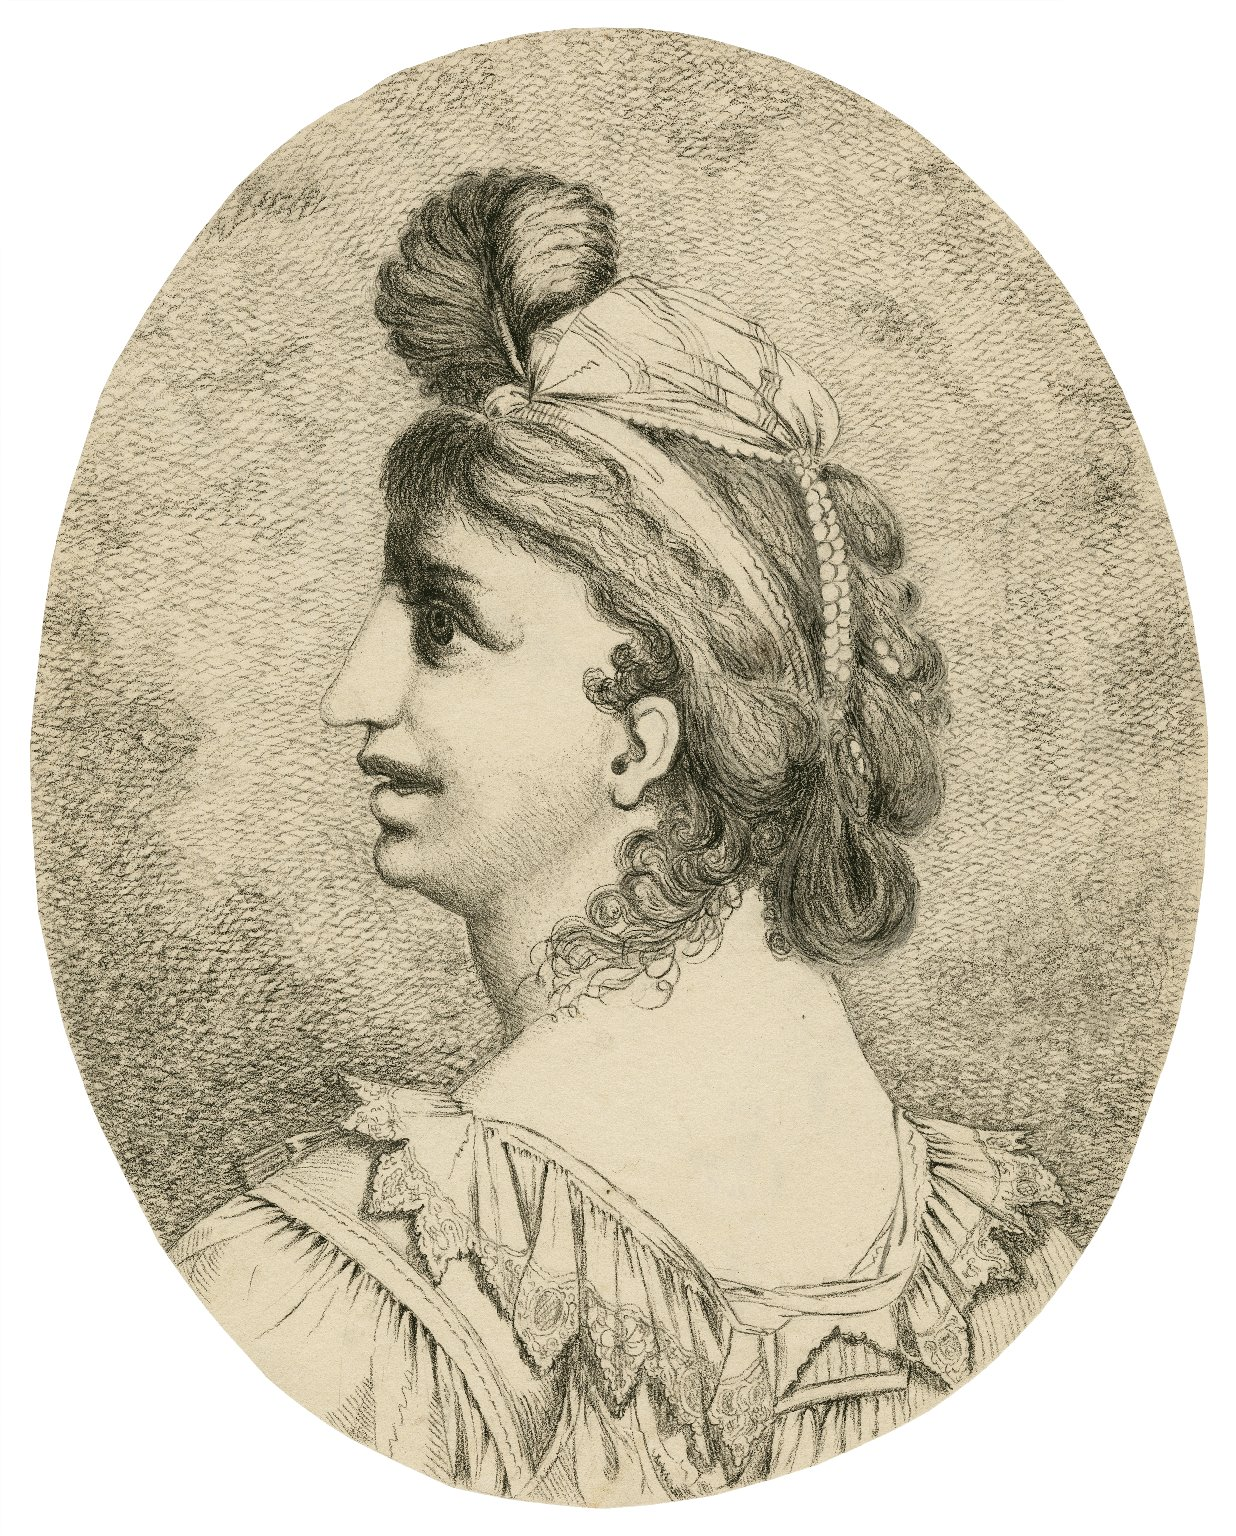 [Much ado about nothing, portrait of Beatrice] [graphic] / [John Hamilton Mortimer].